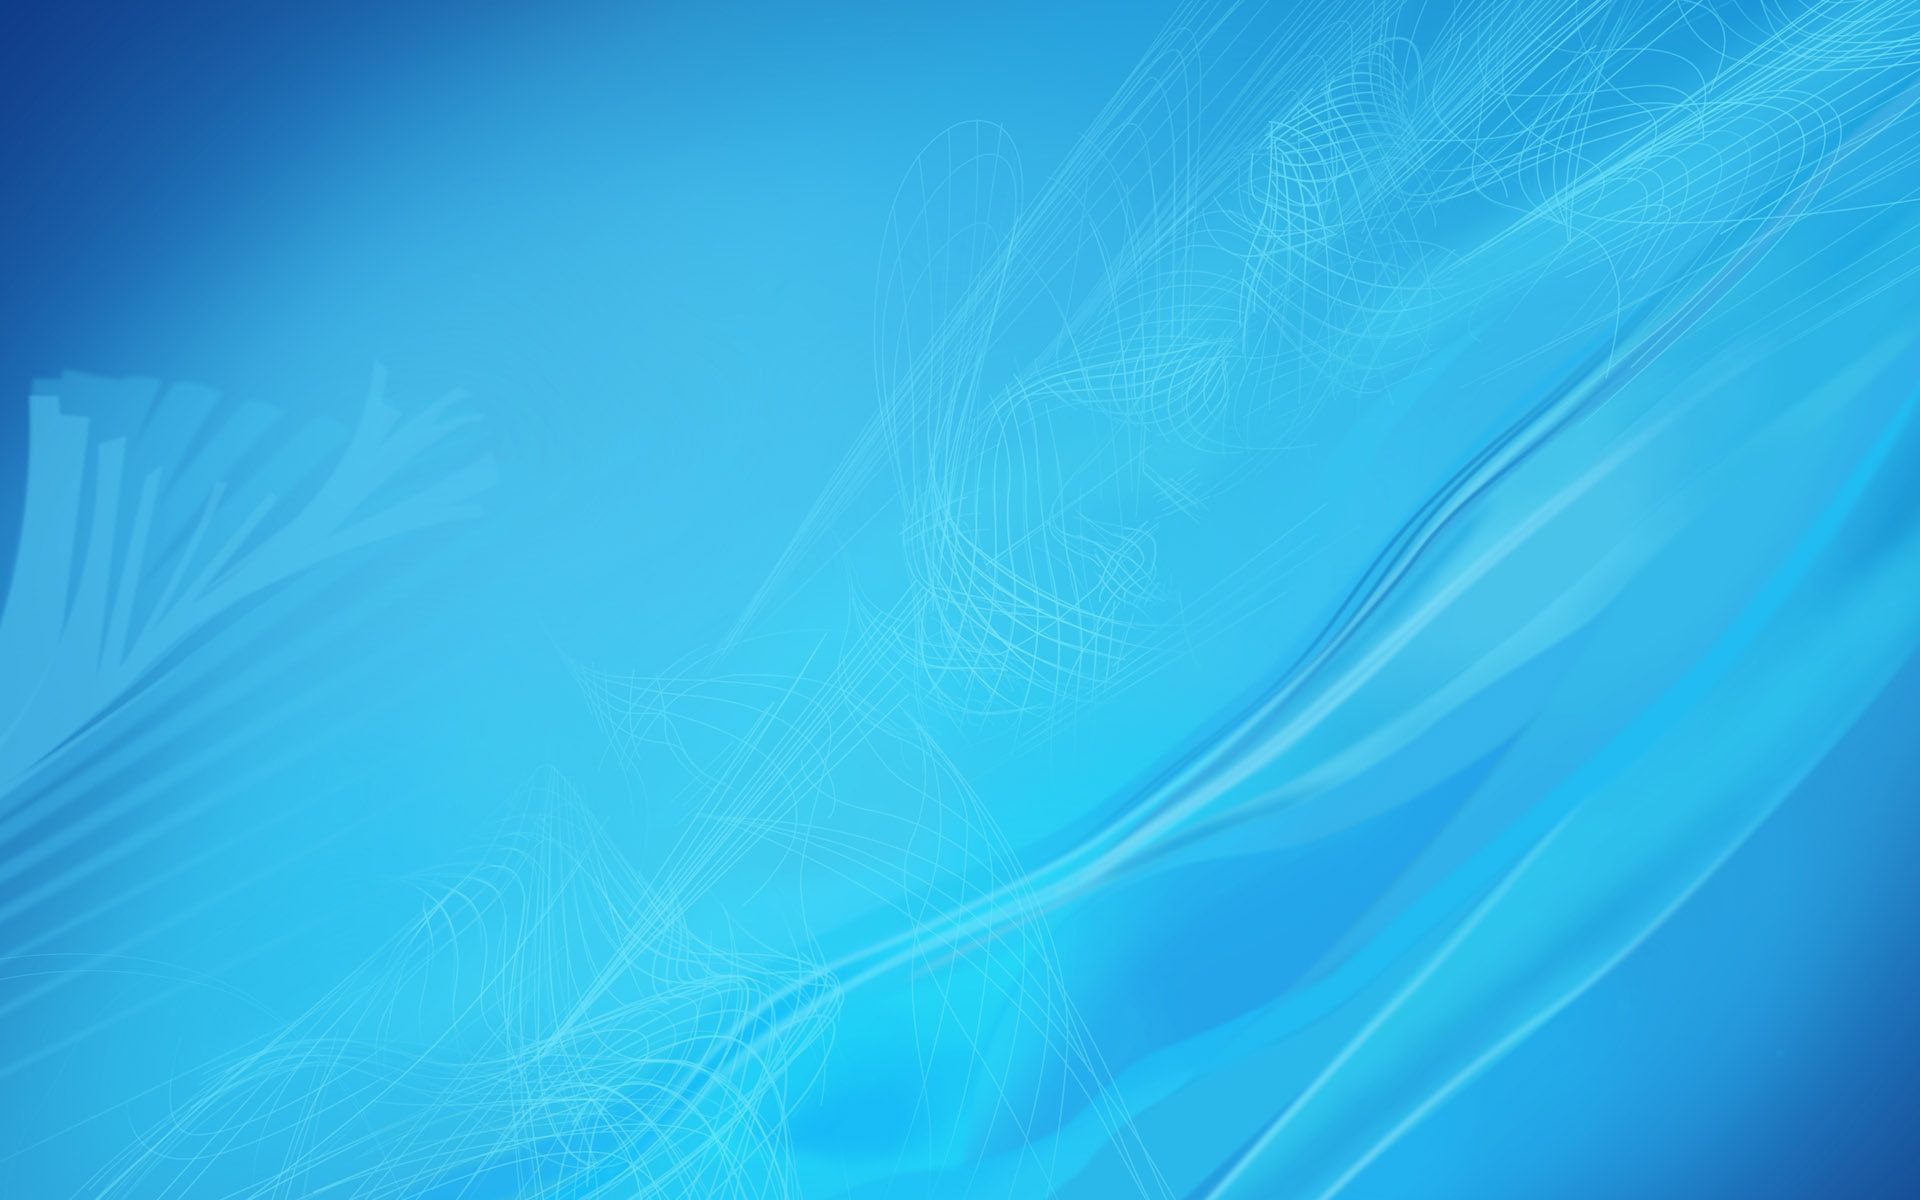 Blue Abstract 4K